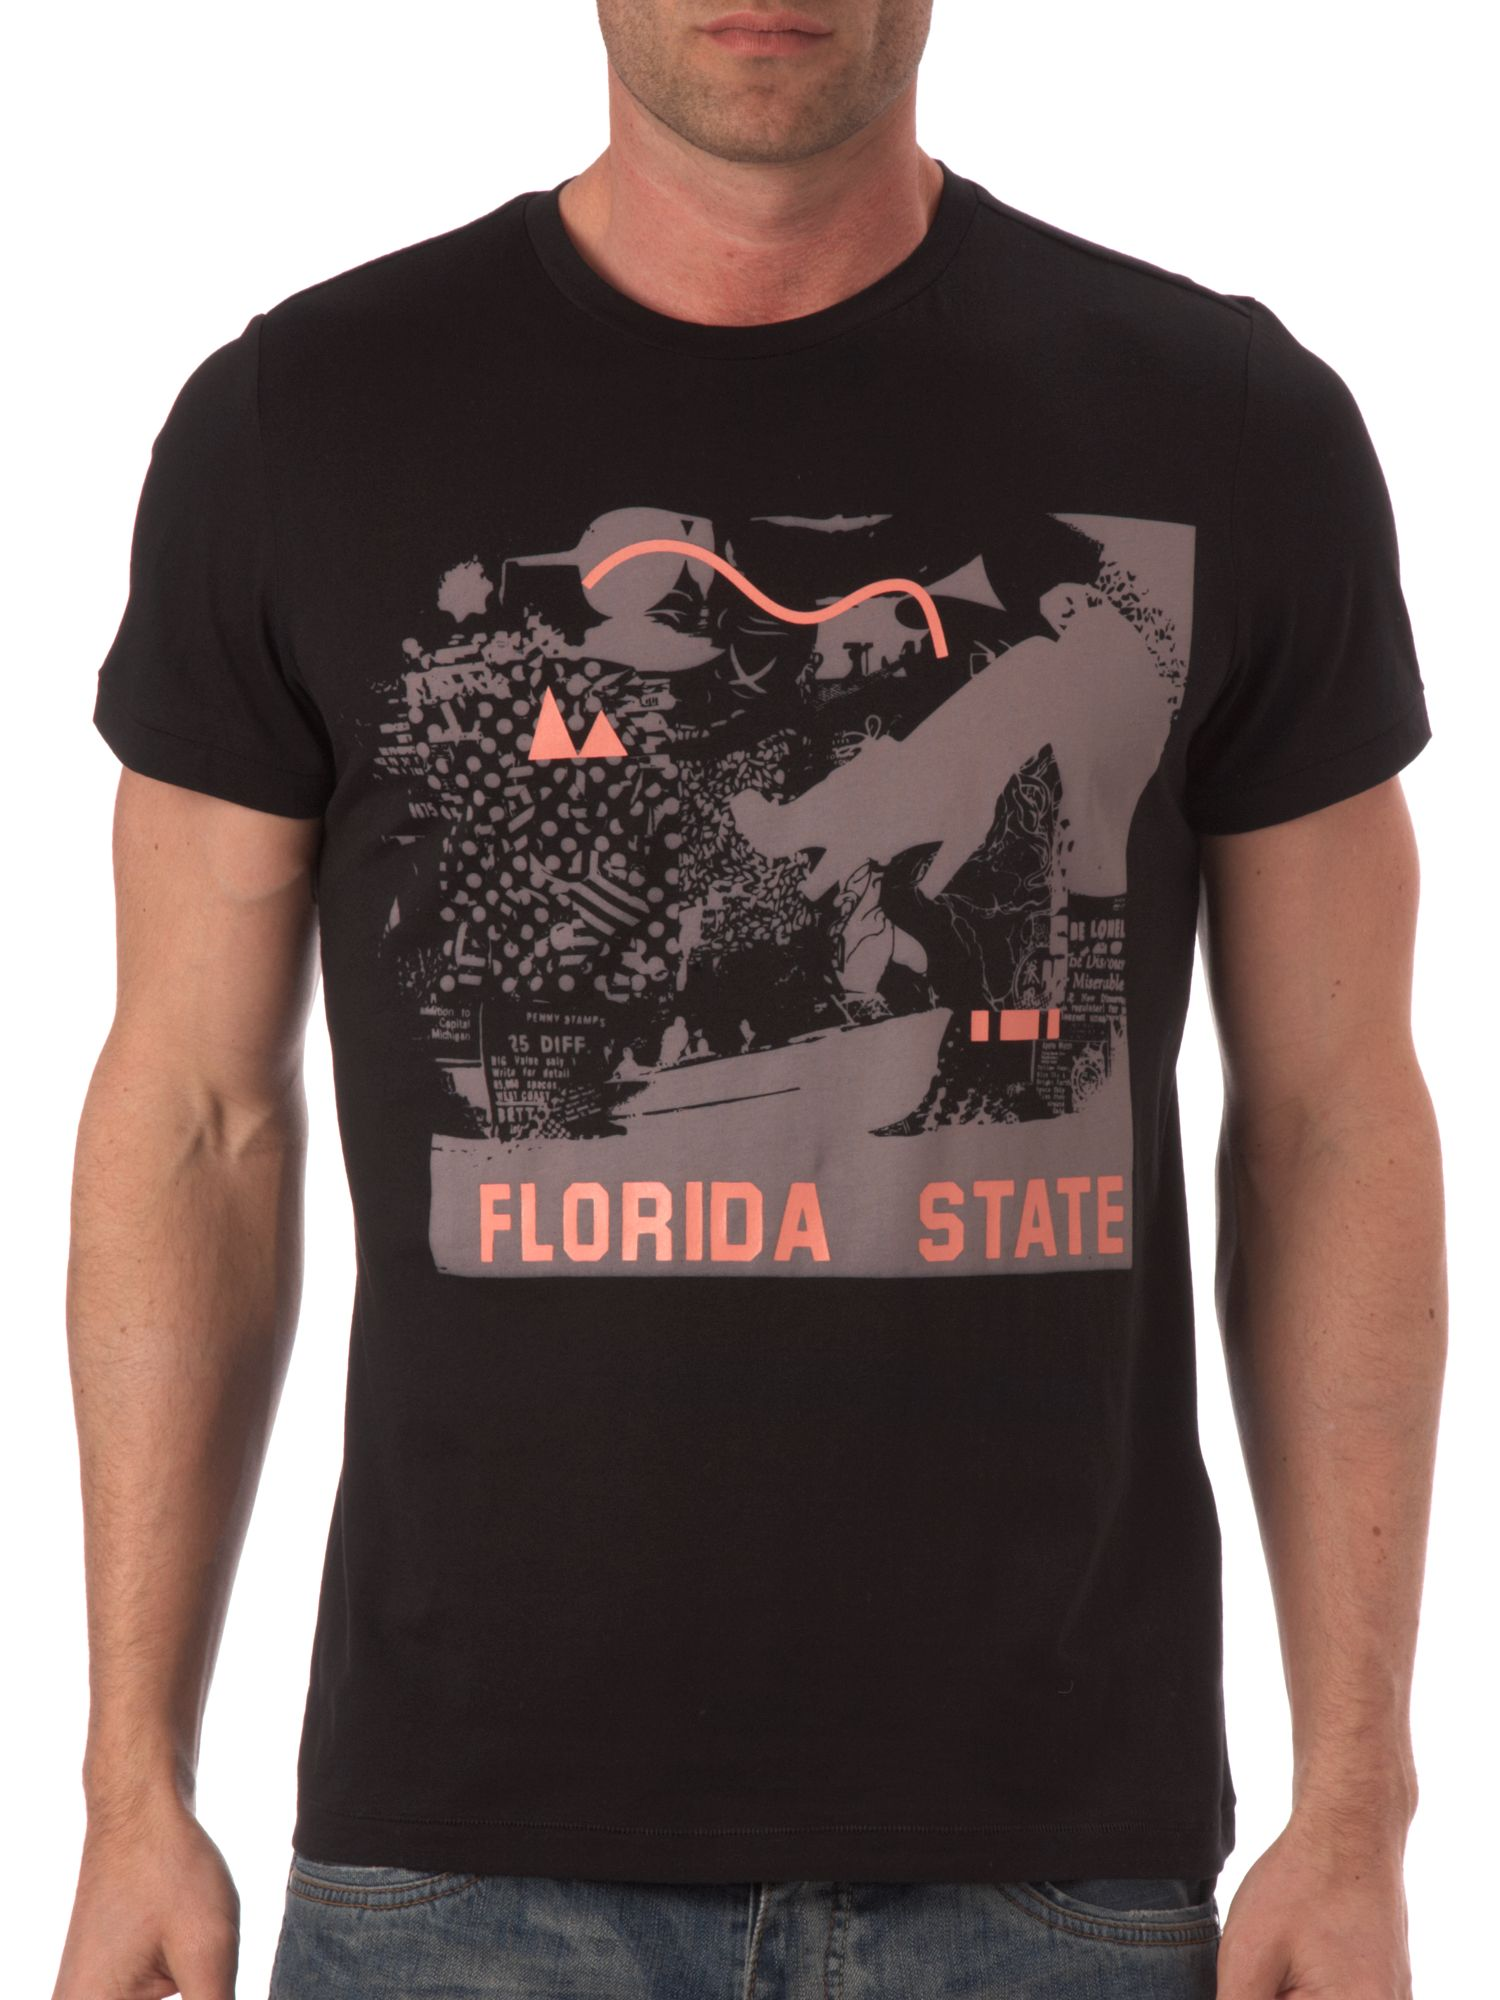 Hugo Boss Florida print t-shirt product image